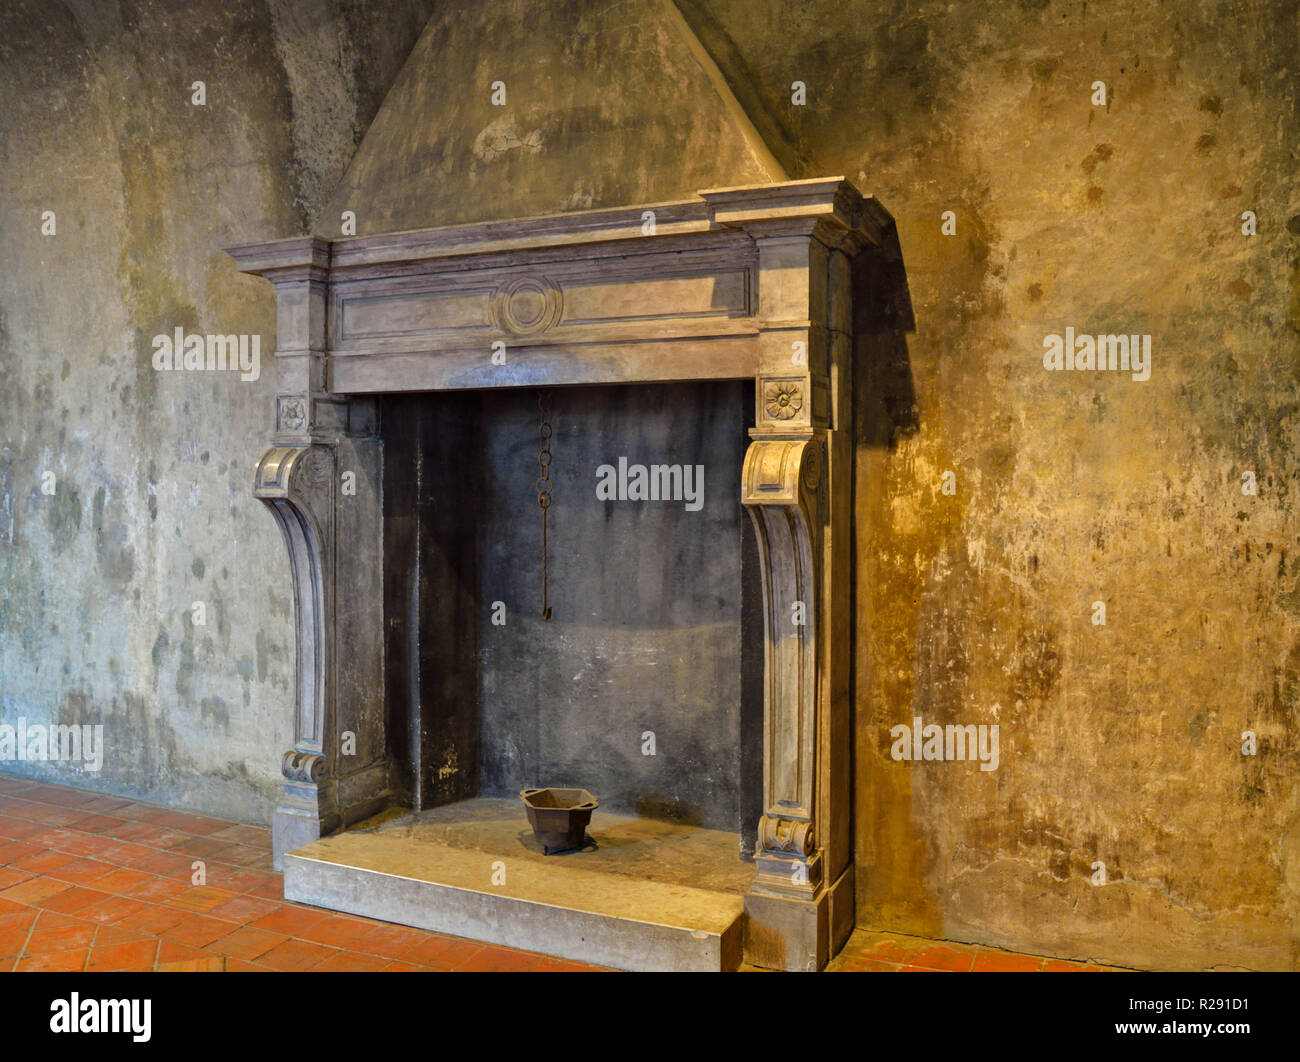 Medieval fireplace in Piemonte, Italy castles Stock Photo